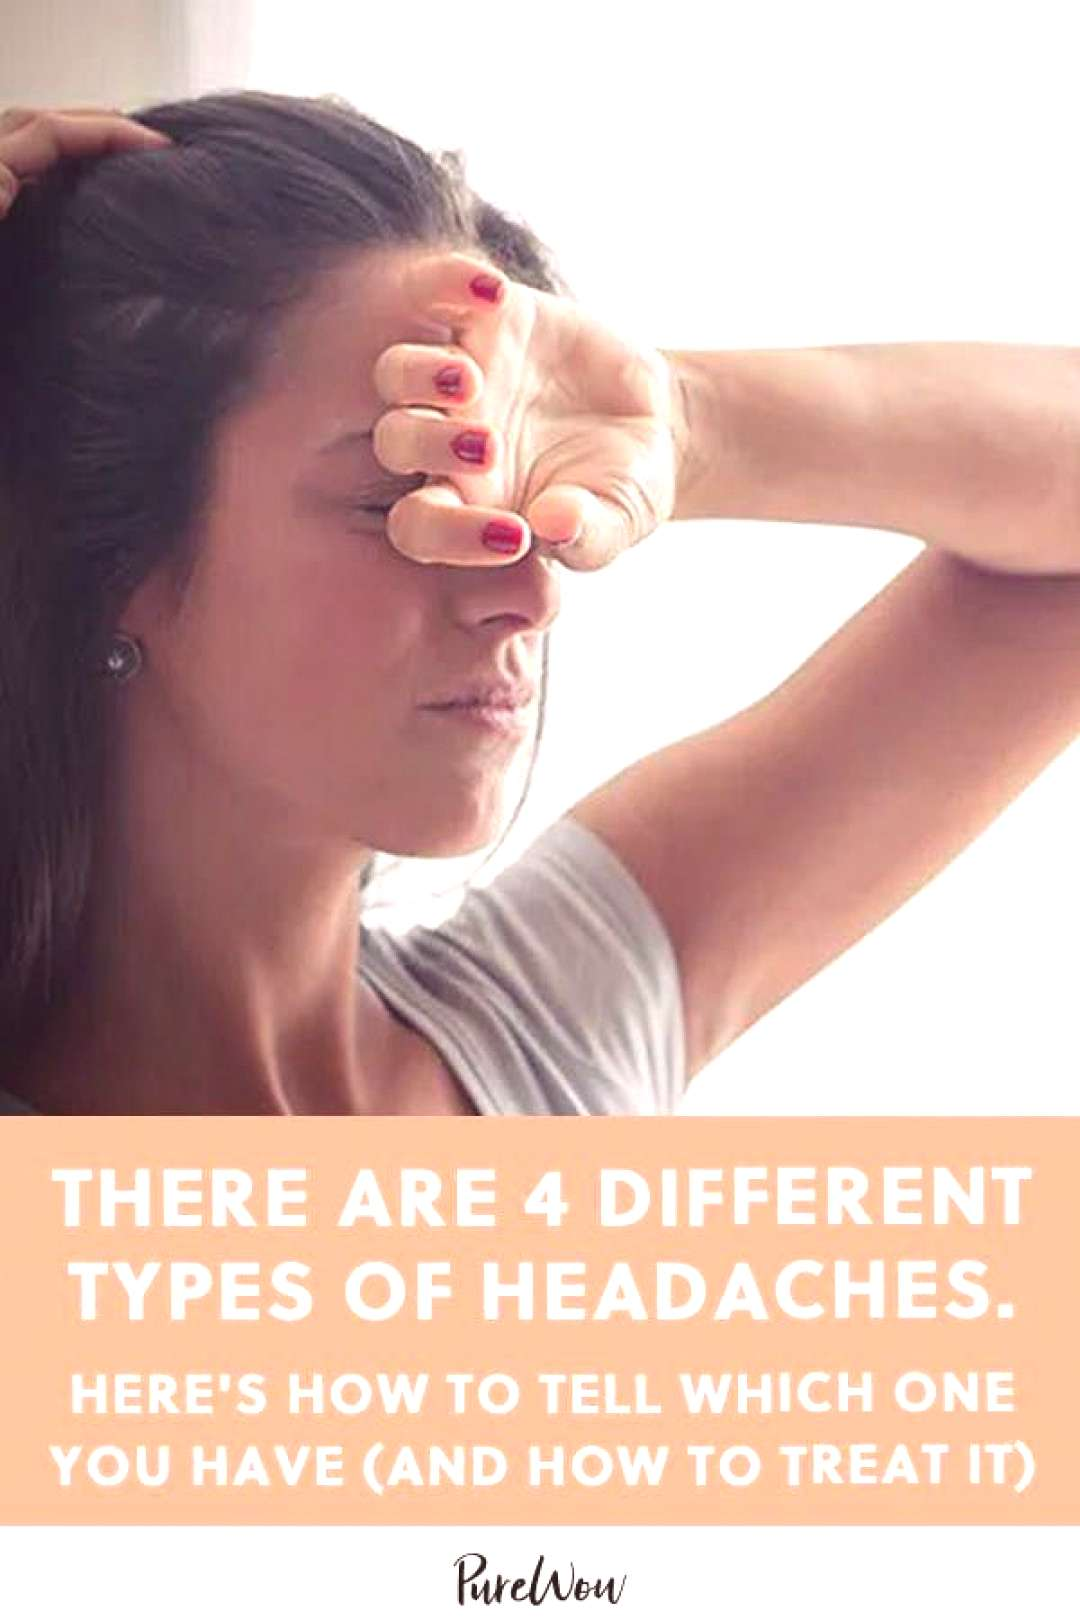 There Are 4 Different Types of Headaches. Here's How to Tell Which One You Have (and How to Treat I